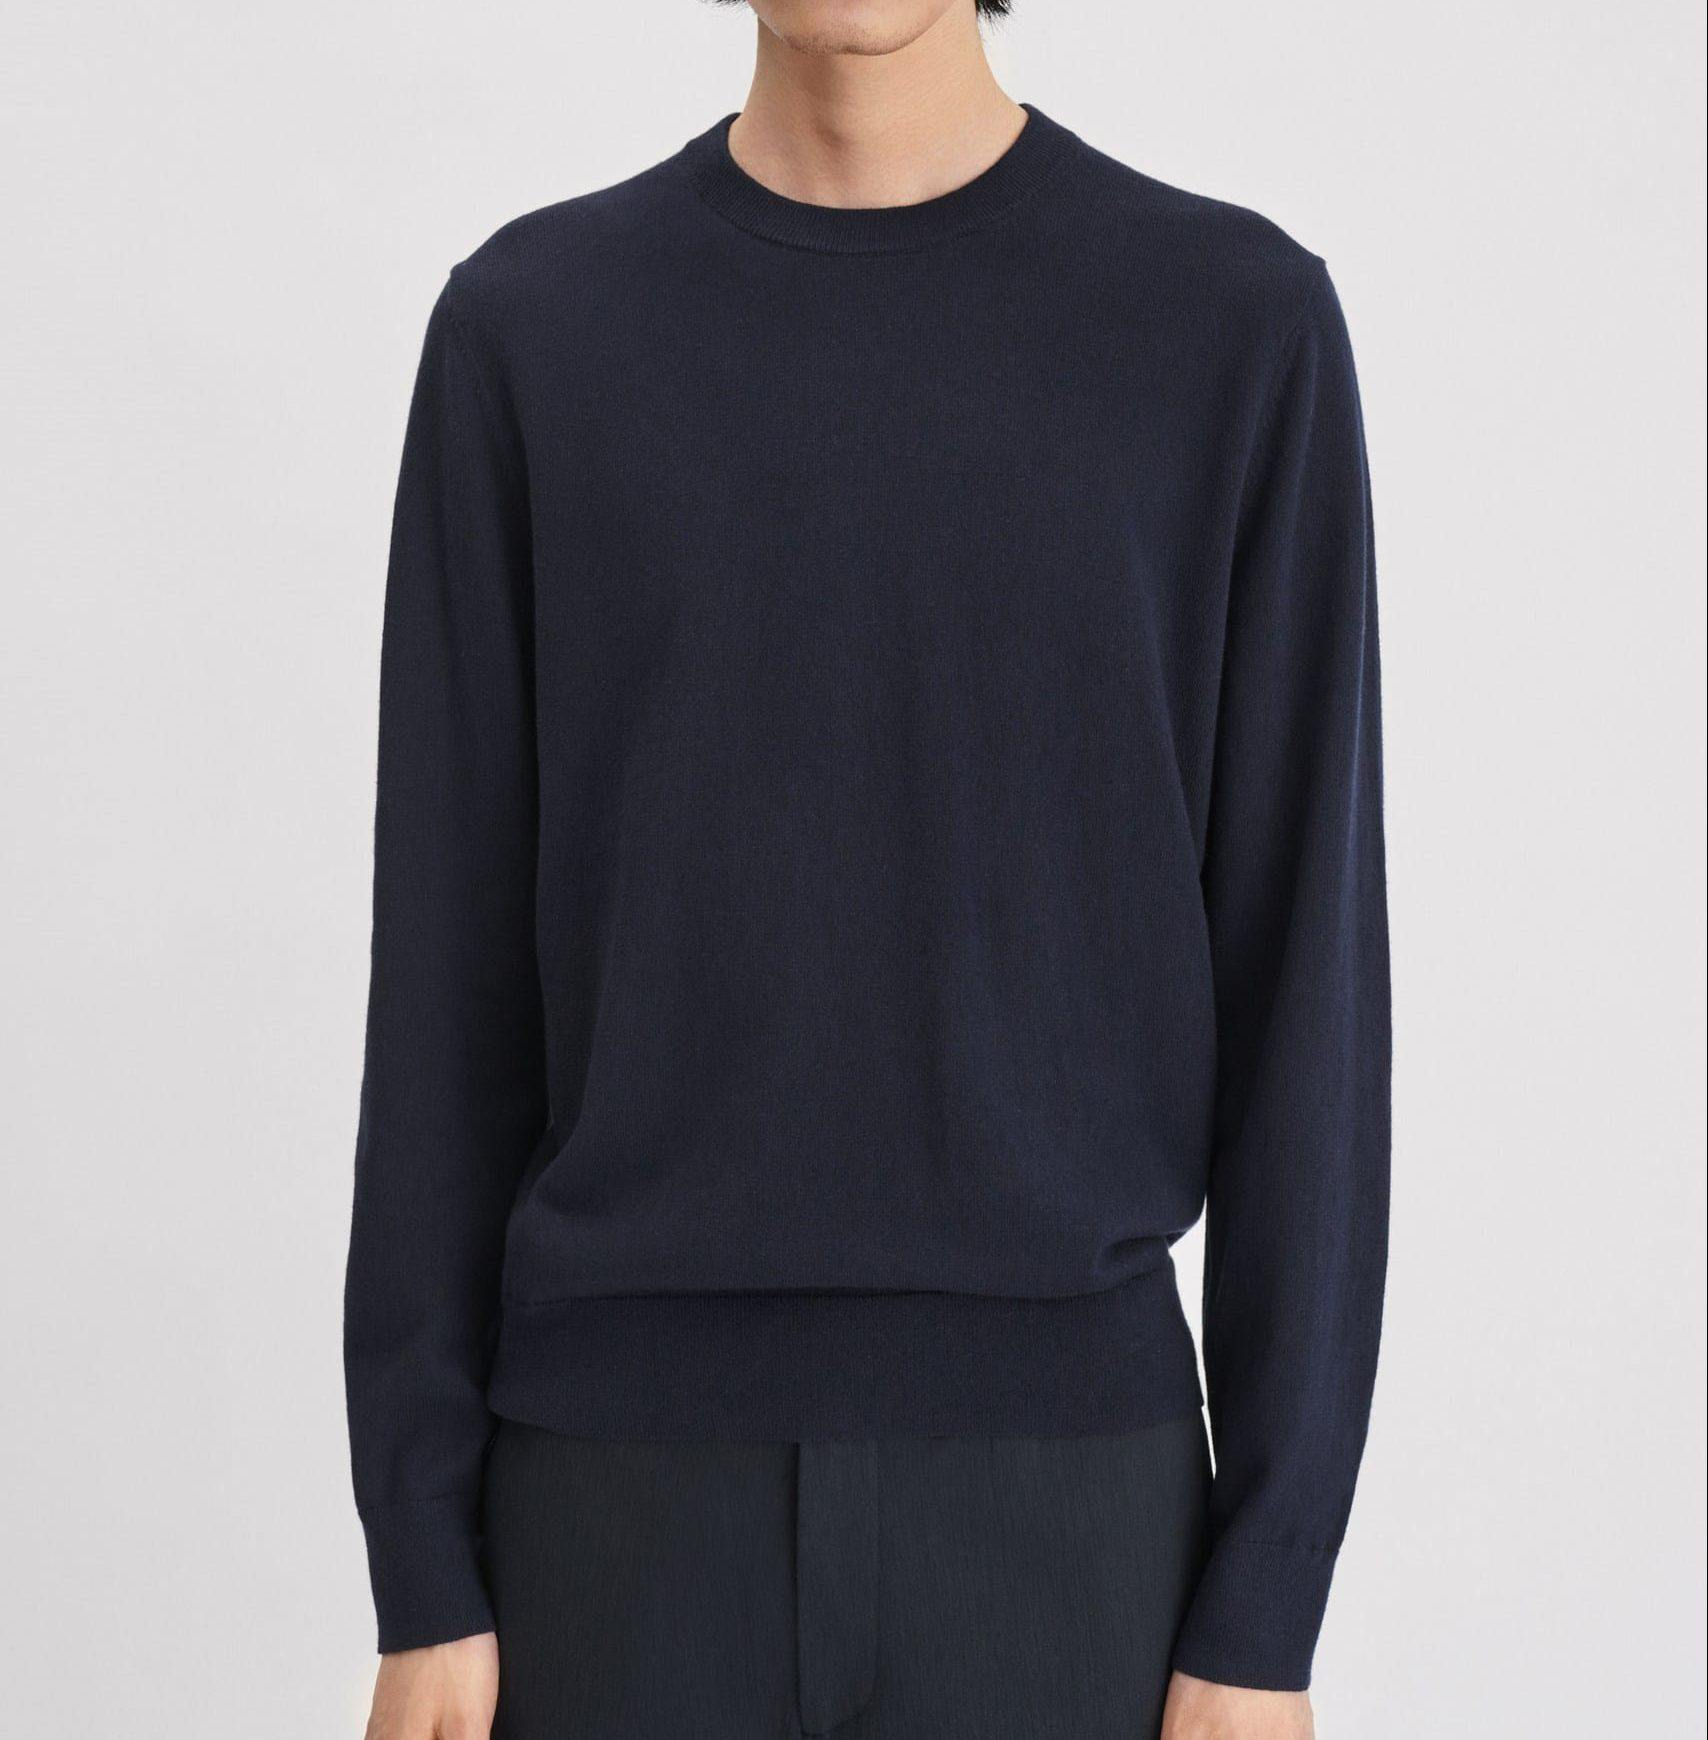 Filippa k - cotton merino Sweater - Navy - Stijl Alkmaar